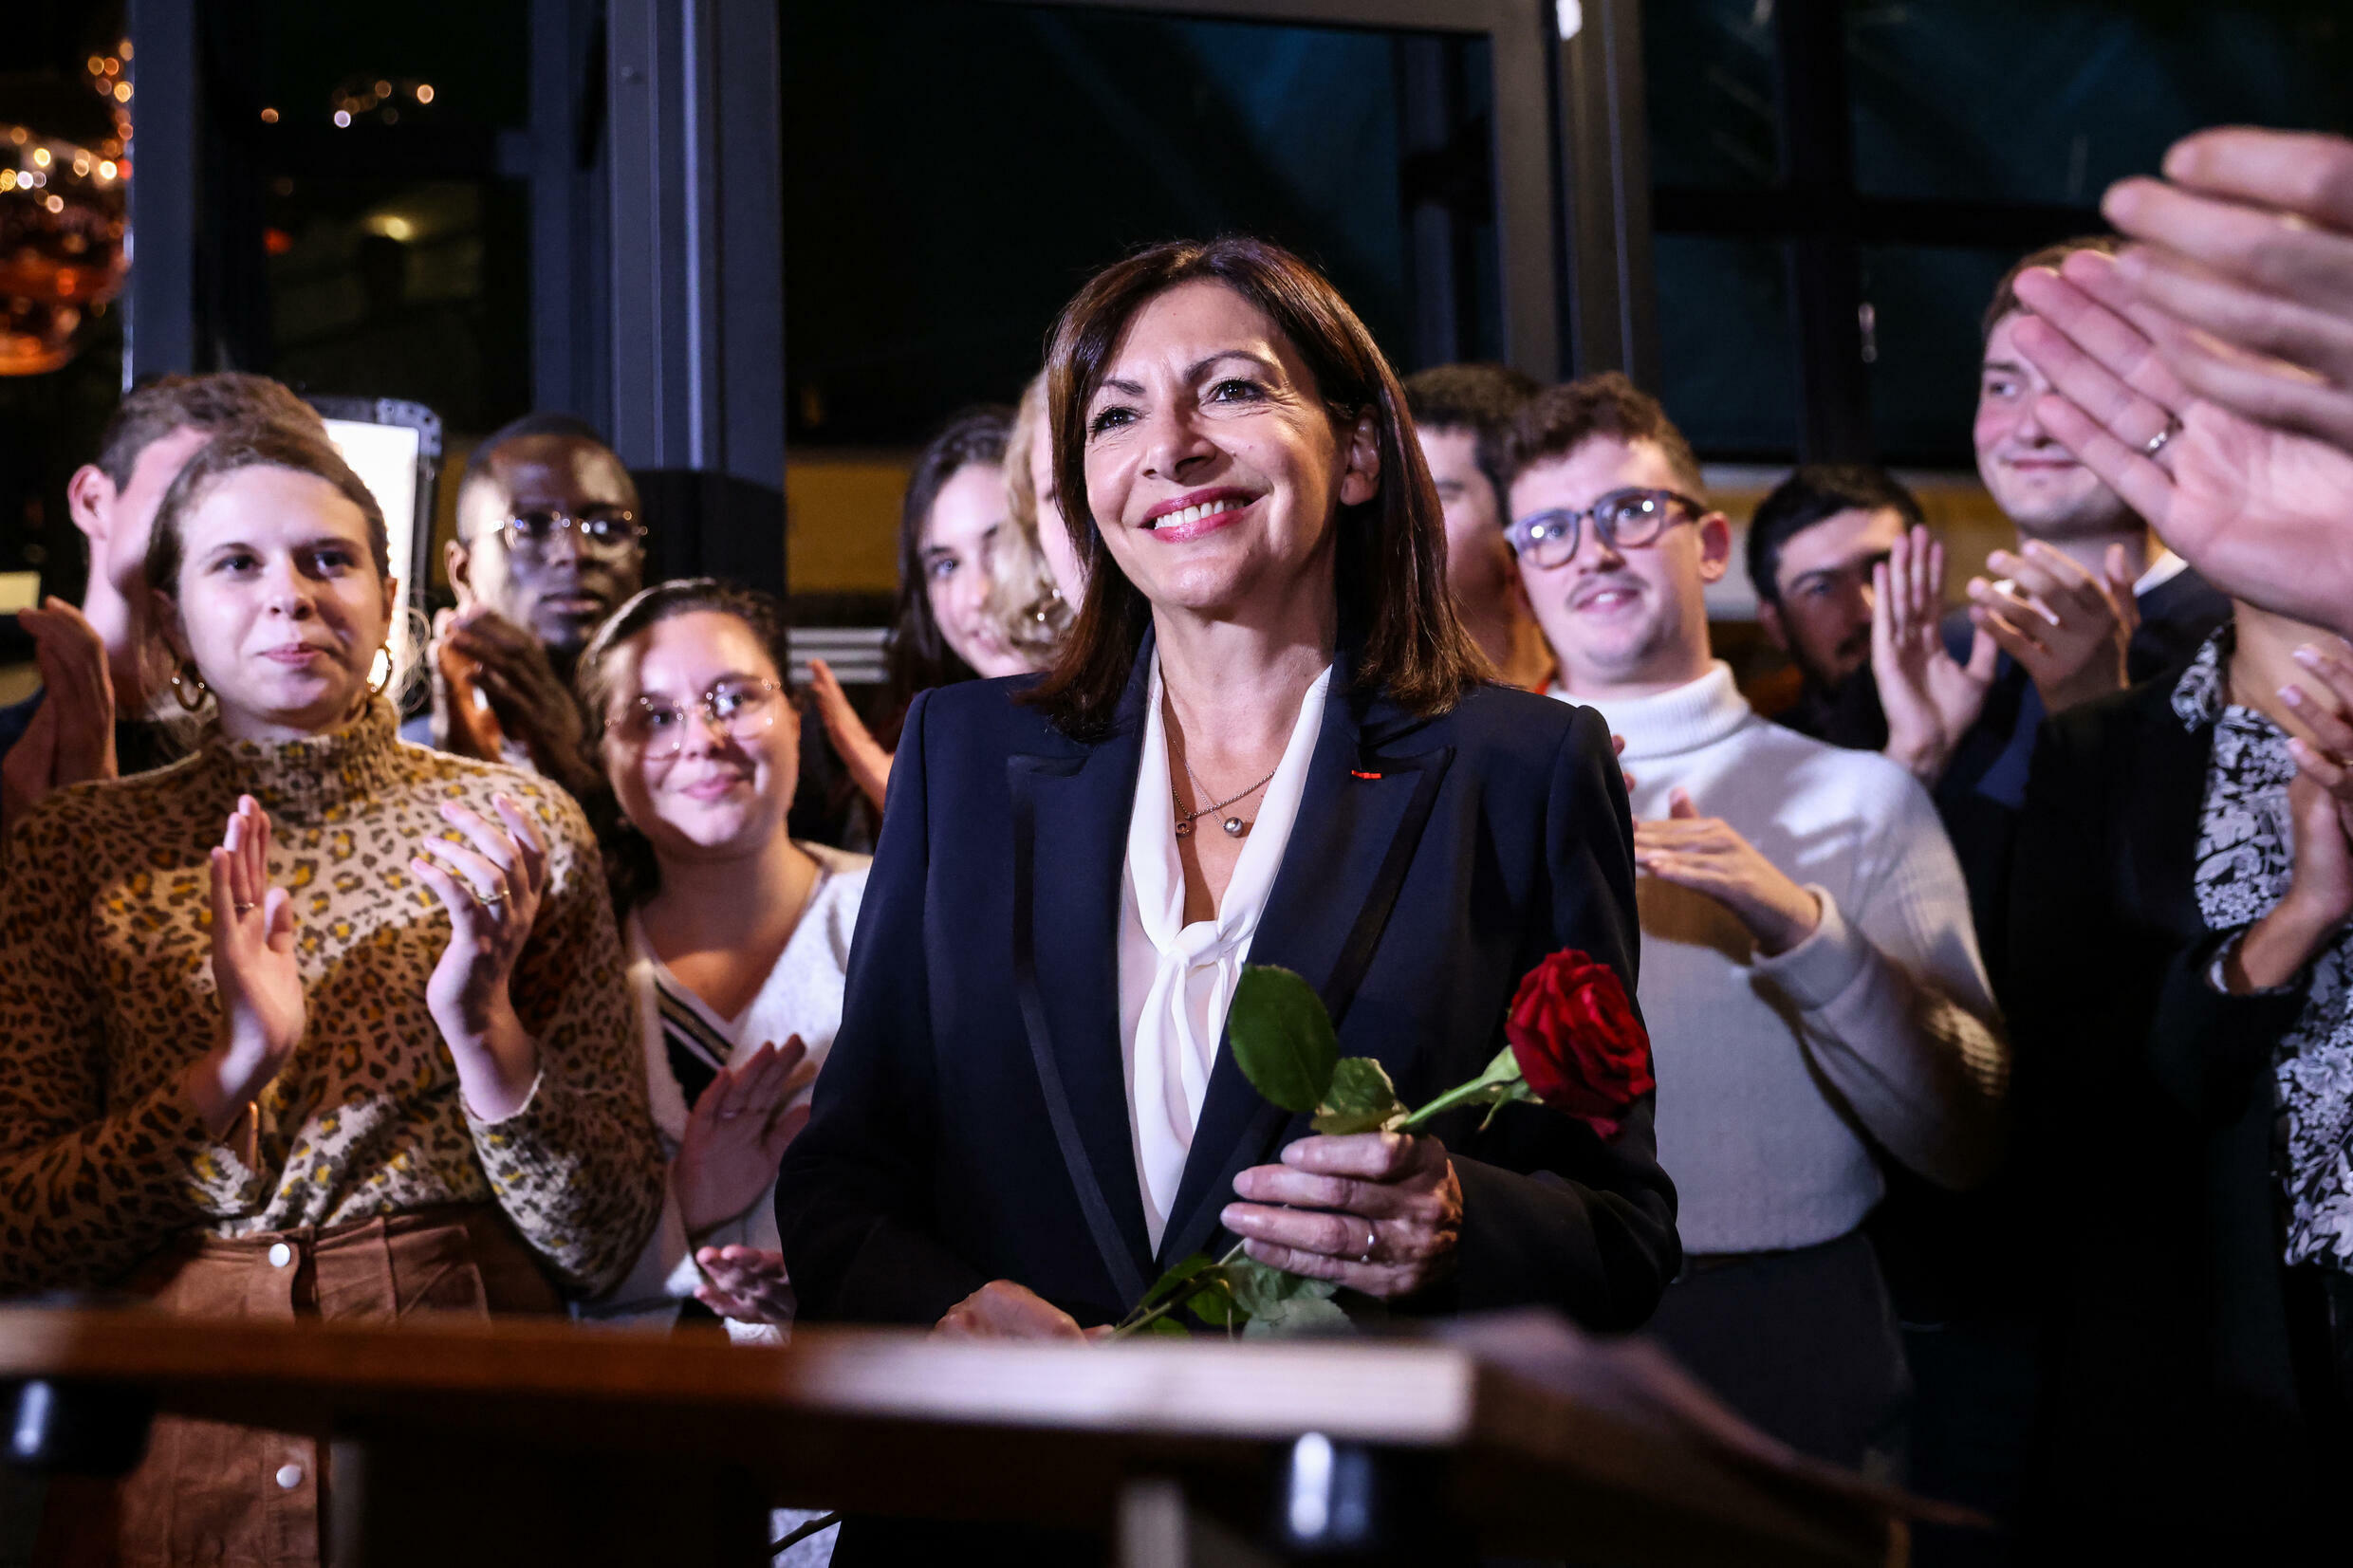 Paris Mayor Anne Hidalgo won more than 72 percent of votes from Socialist members to become the party's presidential candidate